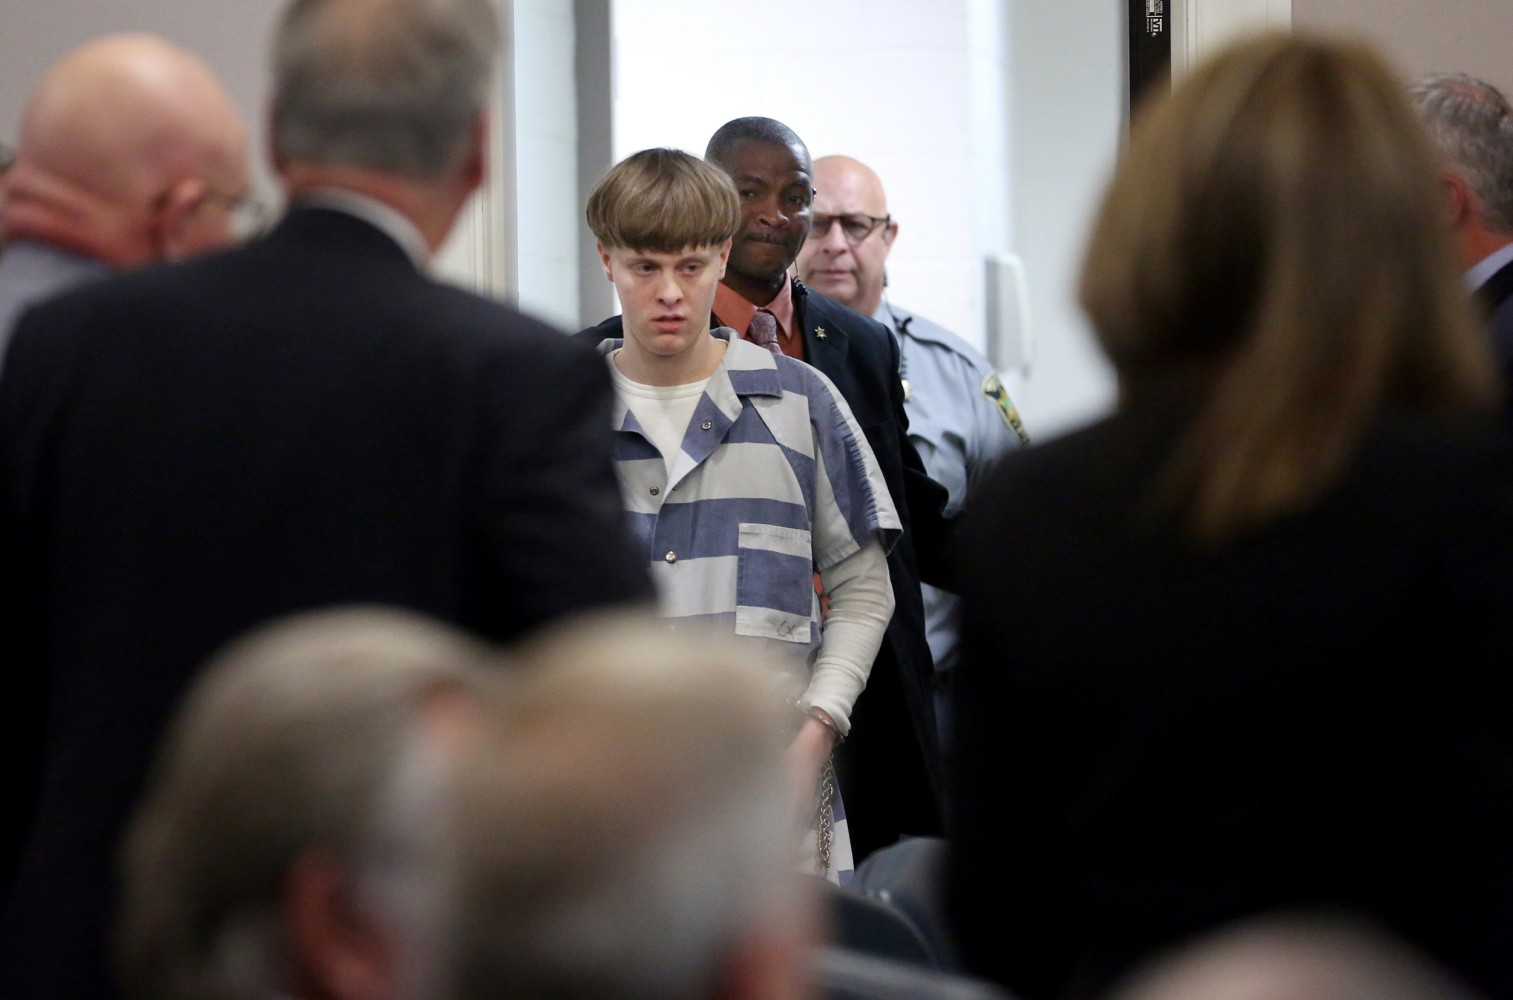 Charleston Church Shooter Dylann Roof Wants to Sack Indian, Jewish Lawyers